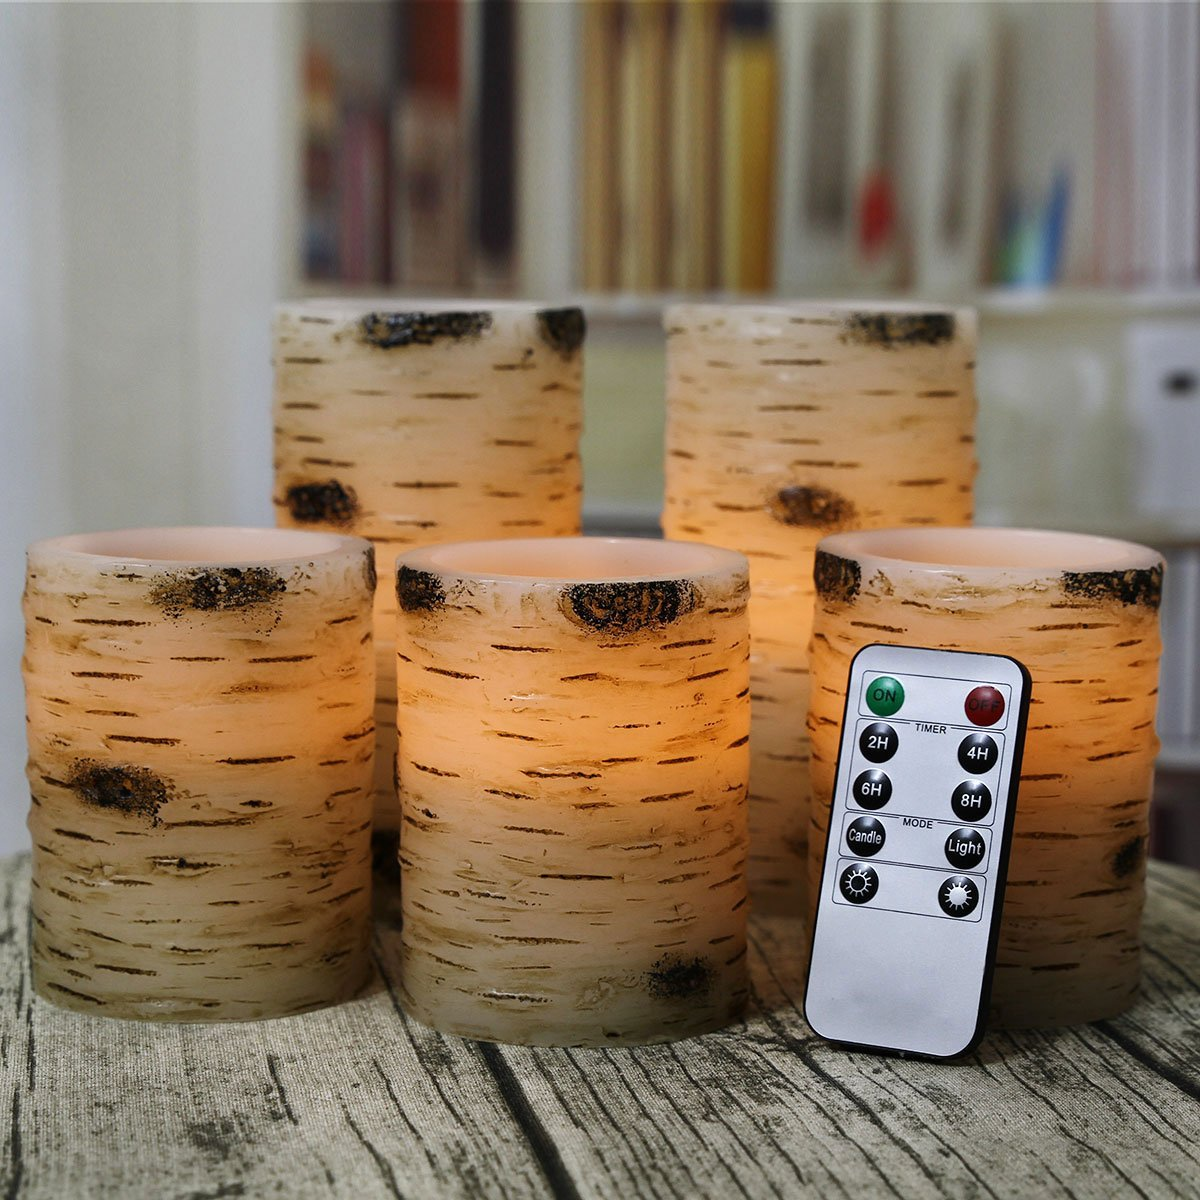 Pandaing Set of 5 Pillar Birch Bark Effect Flameless LED Candles with 10-key Remote Control and 2 4 6 or 8 Hours Timer Function by Pandaing (Image #4)